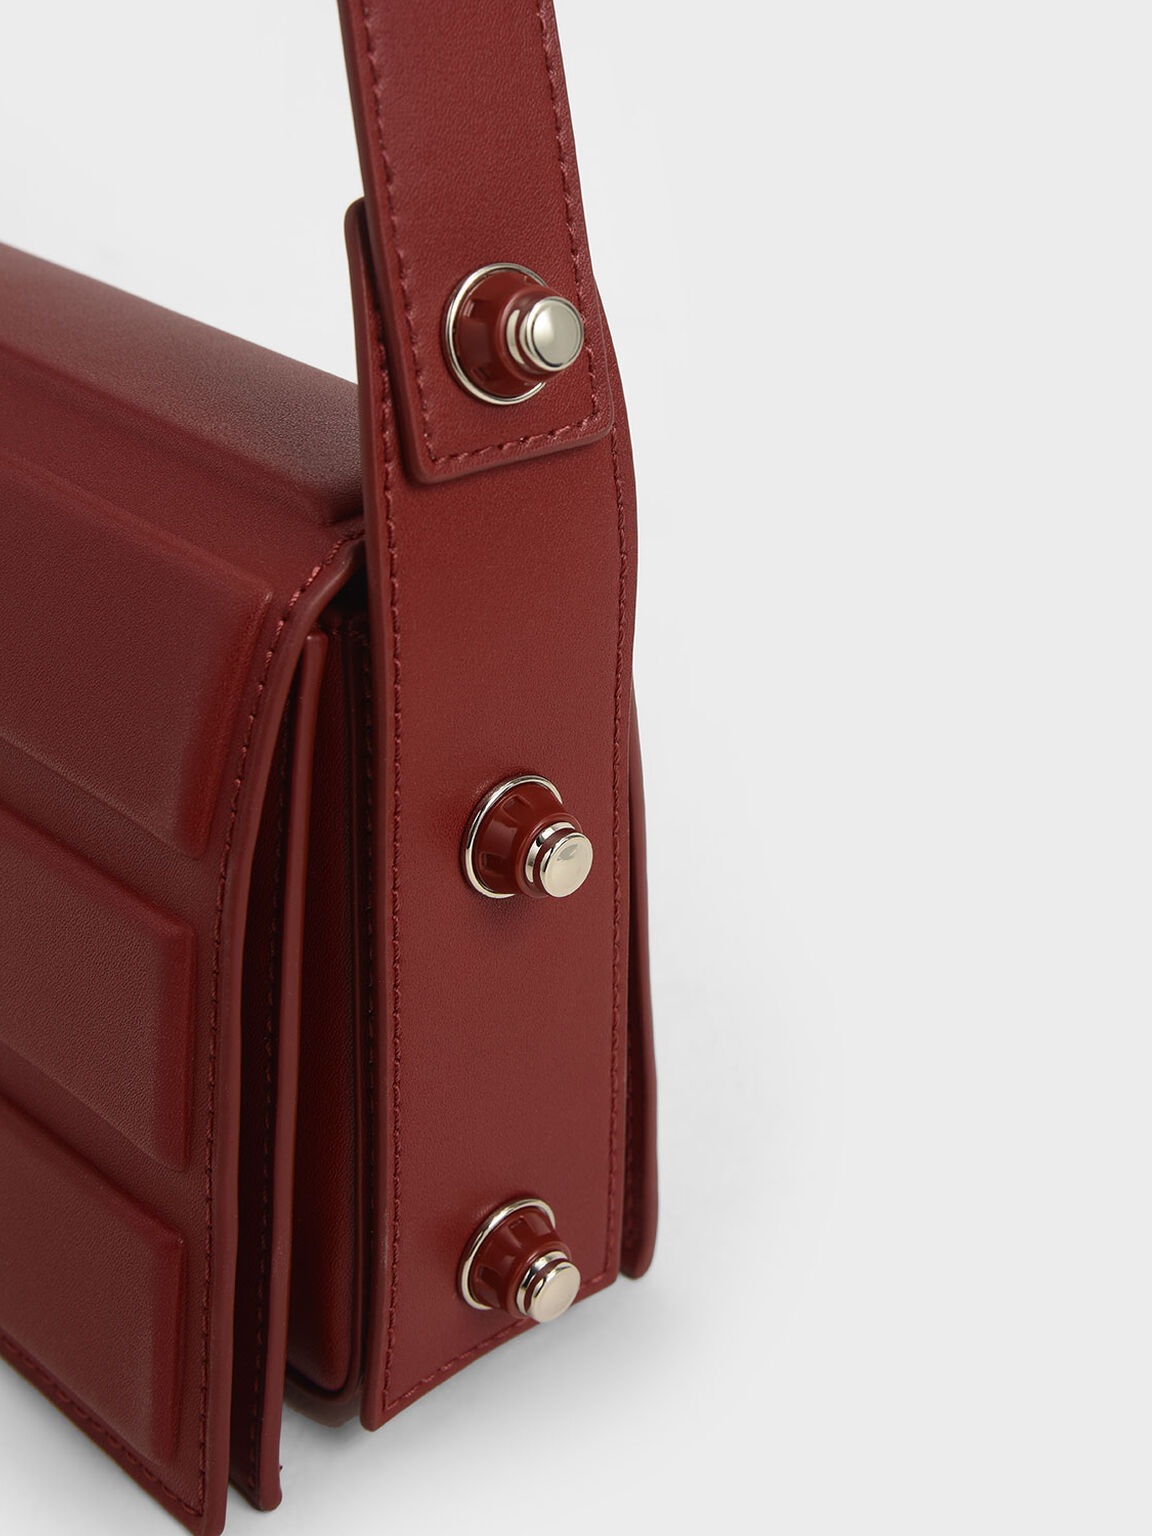 Eyelet-Embellished Top Handle Bag, Red, hi-res